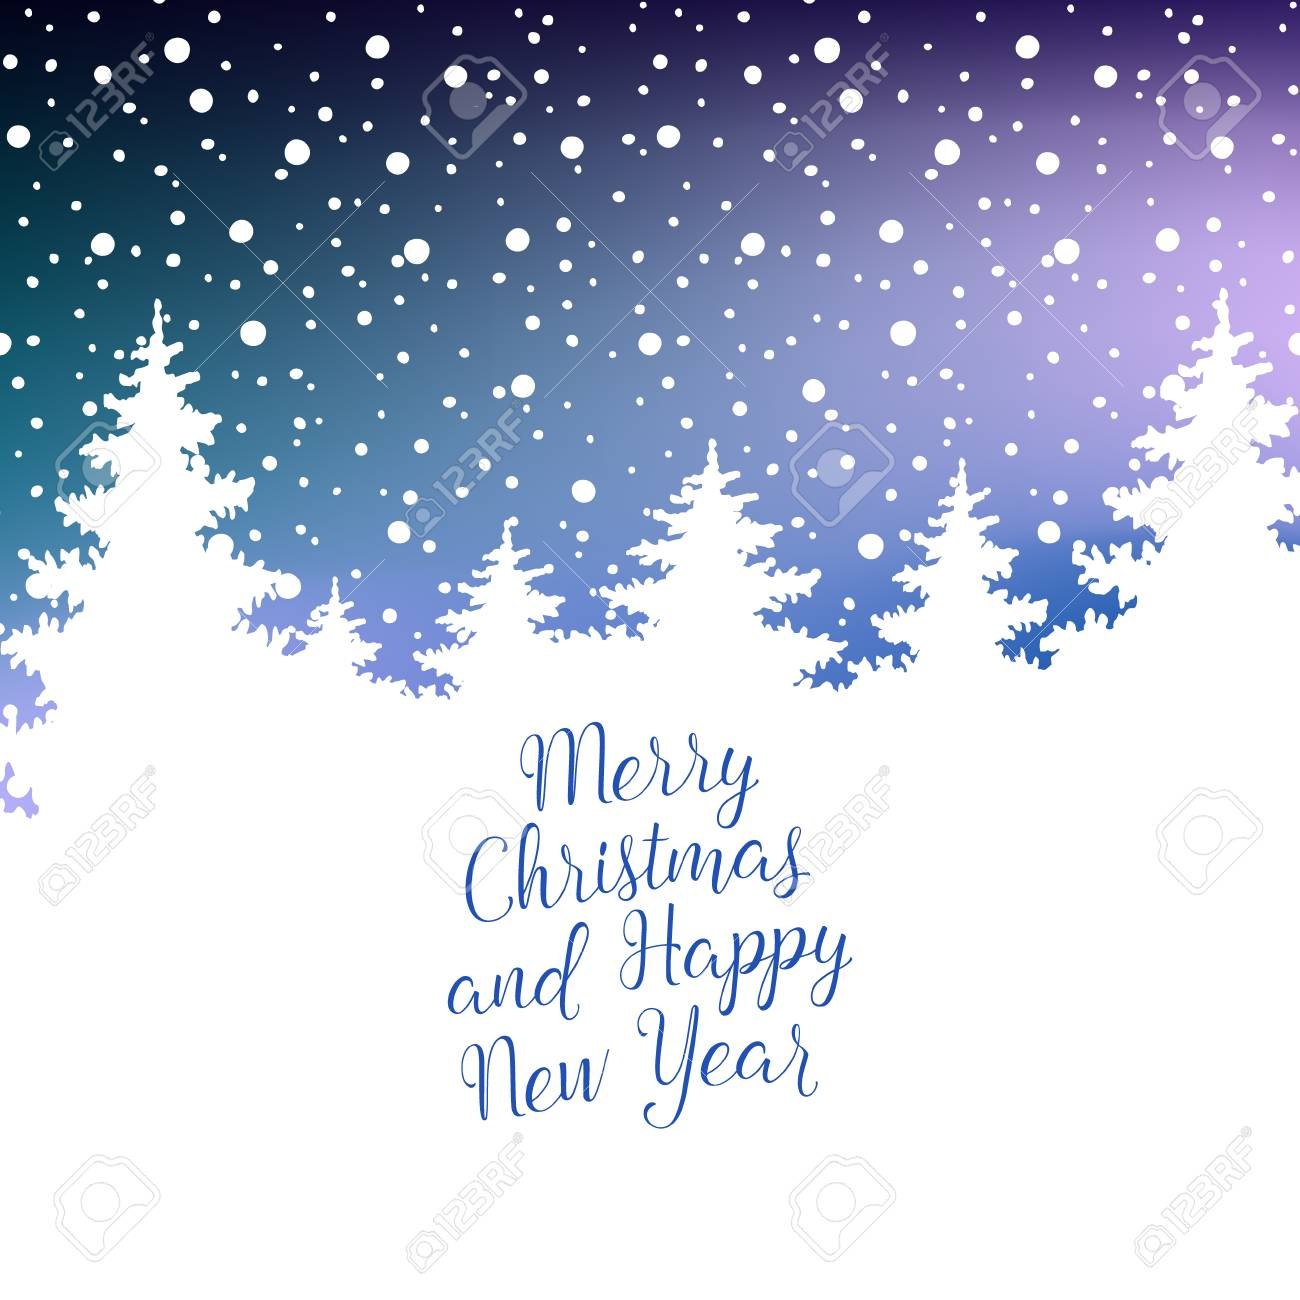 Merry Christmas And Happy New Year Greeting Card. Vector Winter ...